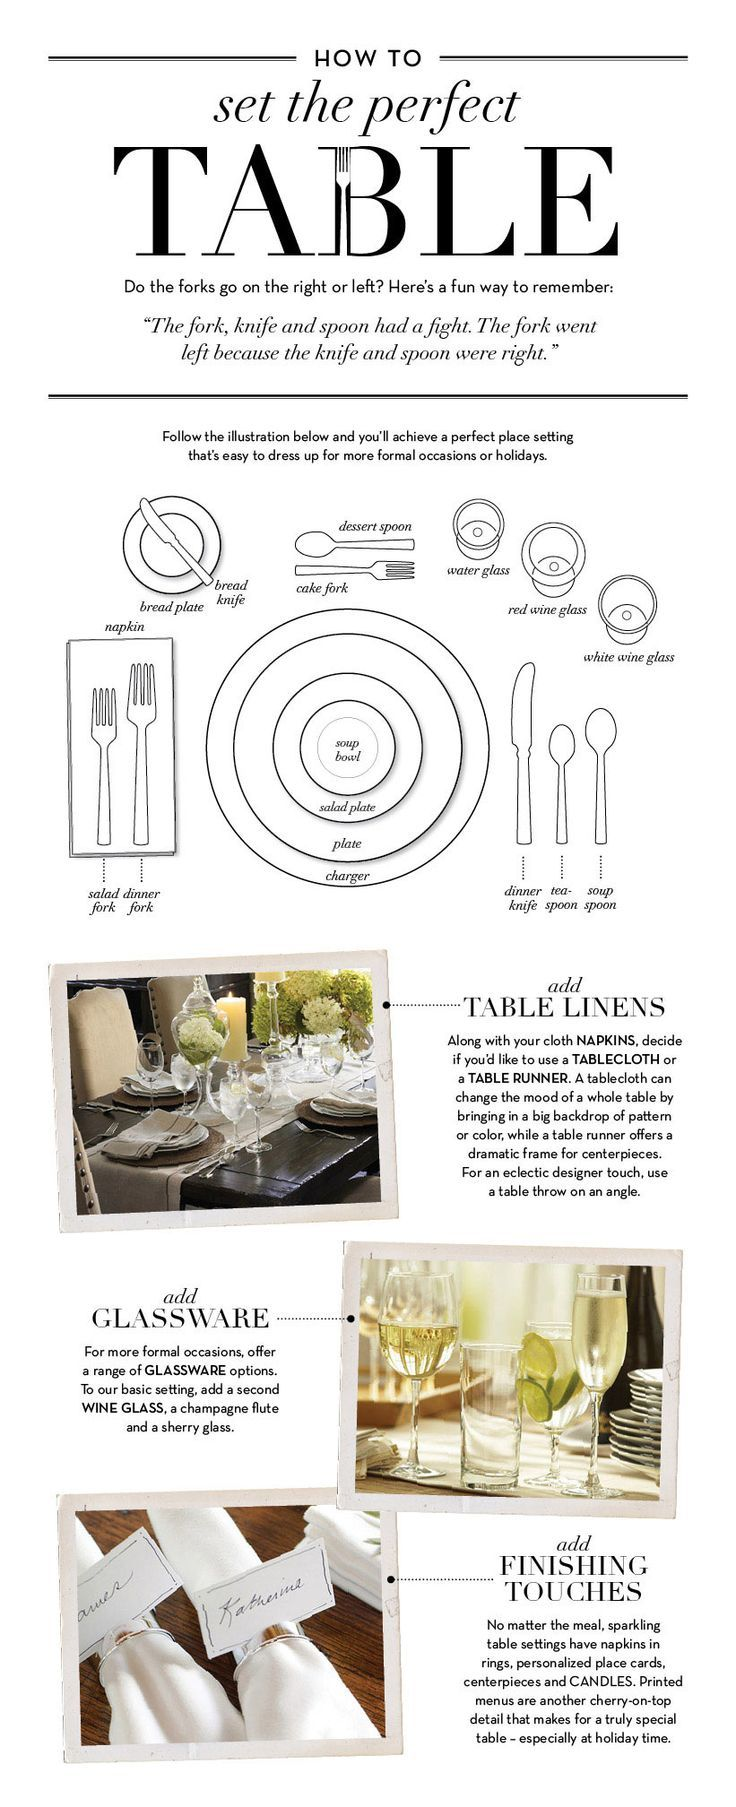 Explore Pottery Barn Kitchen Table Etiquette And More